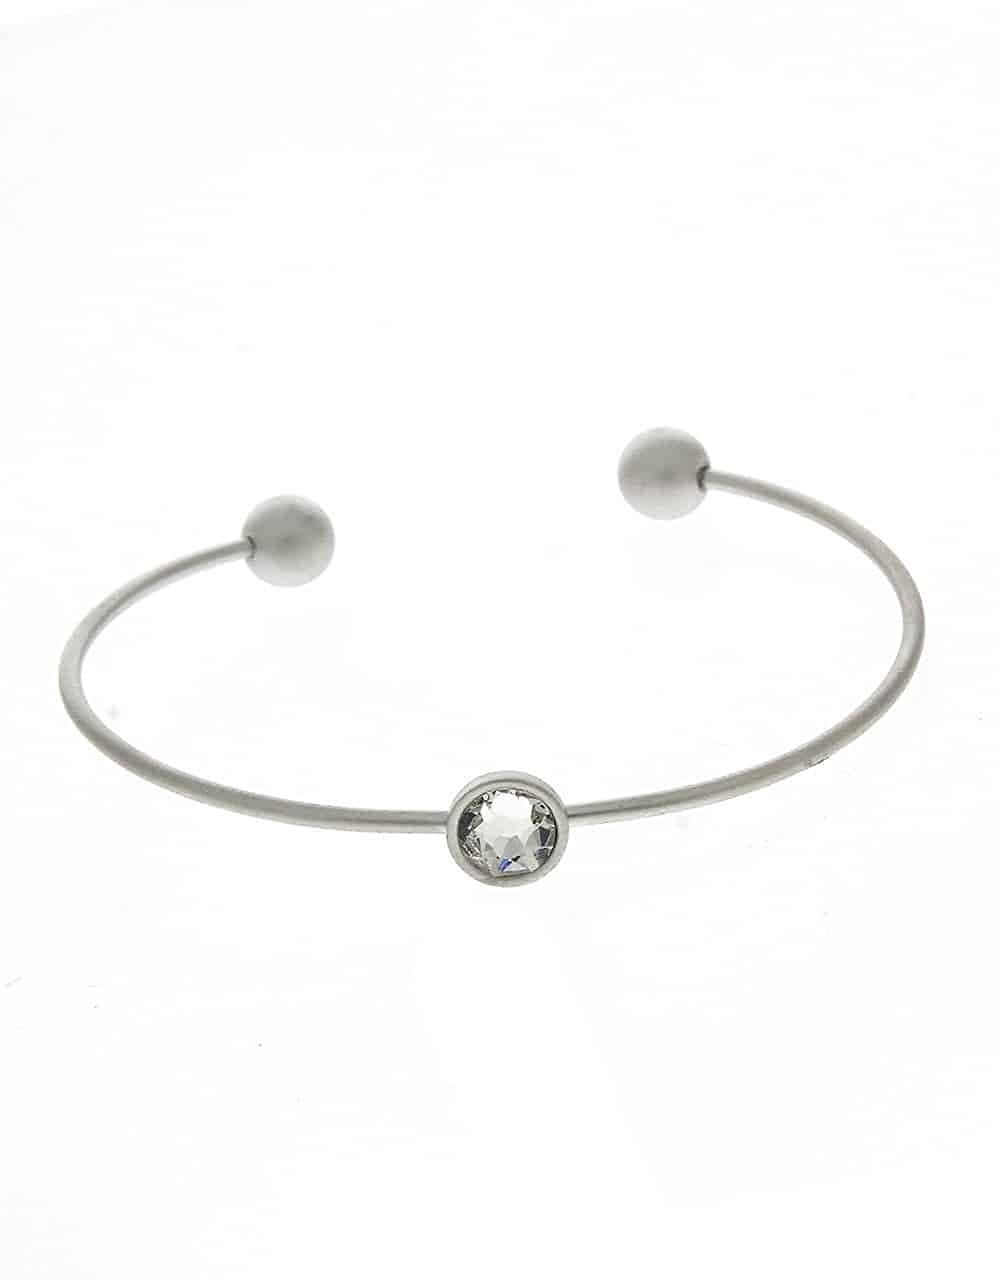 Anuradha Art Silver Tone Styled with White Colour Stone Kada//Hand Bracelet for Women//Girls